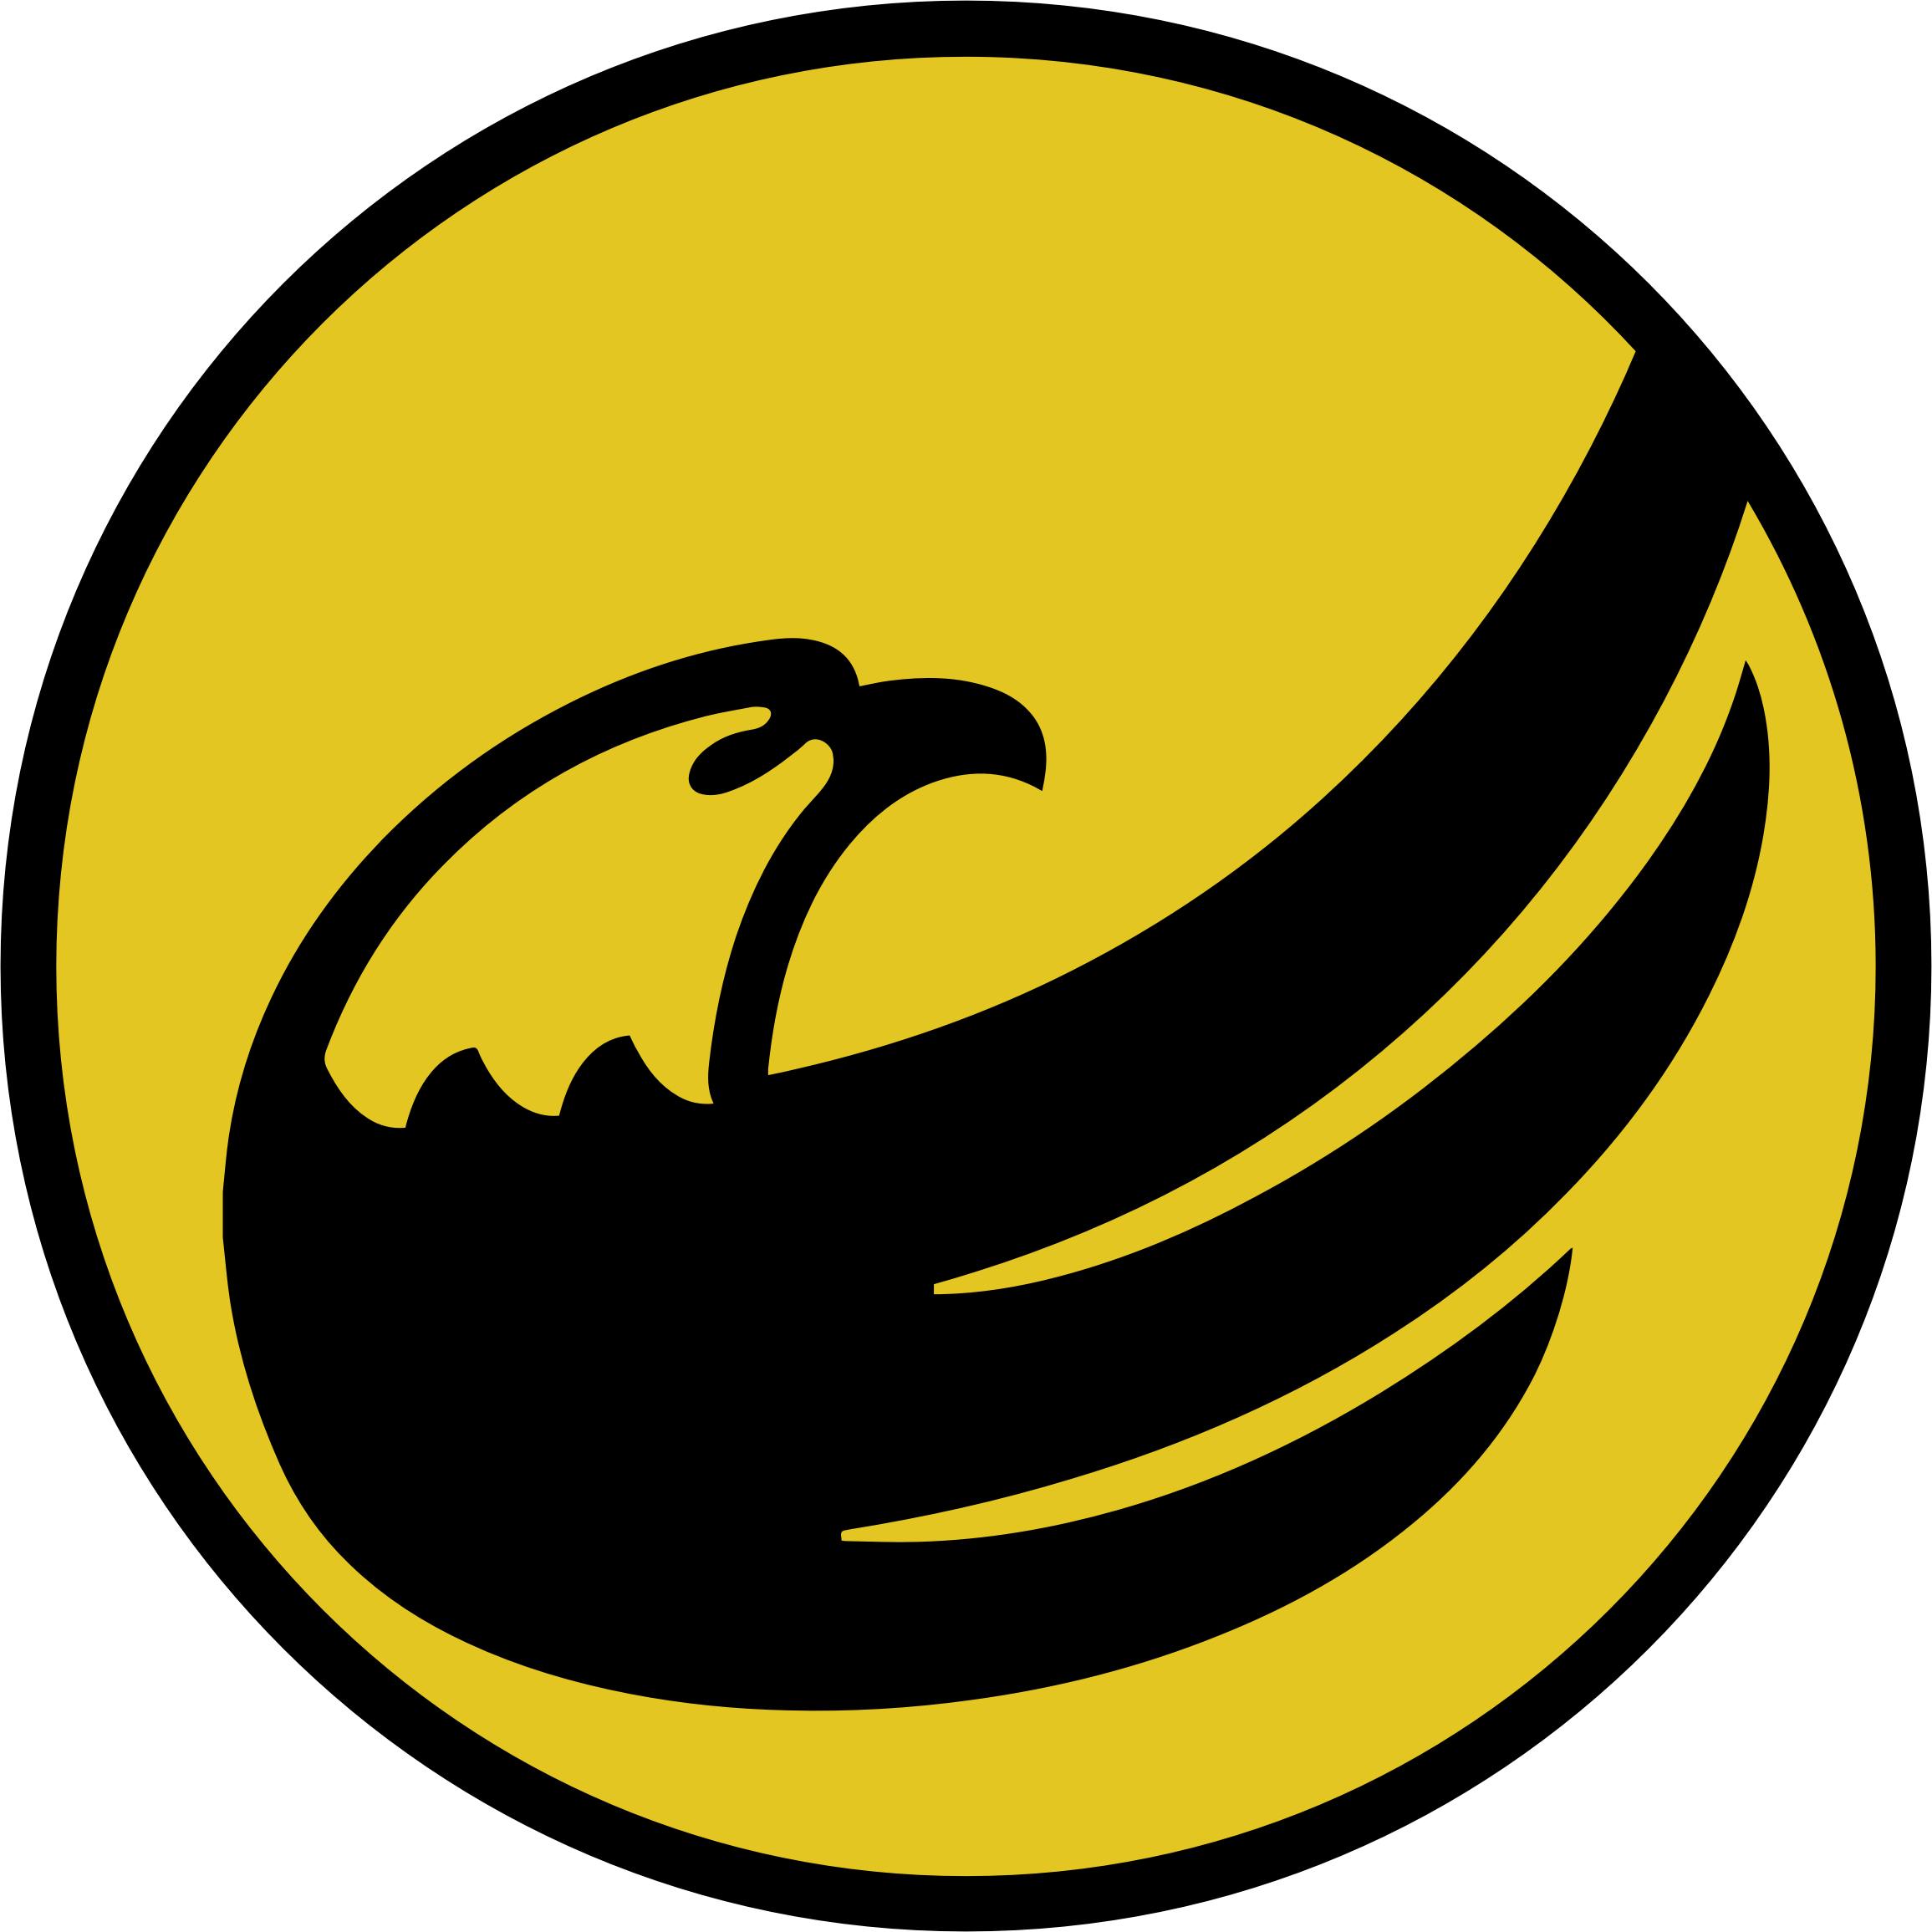 logo-circle: libertarian eagle remix - yellow on black by mrjeremiahross